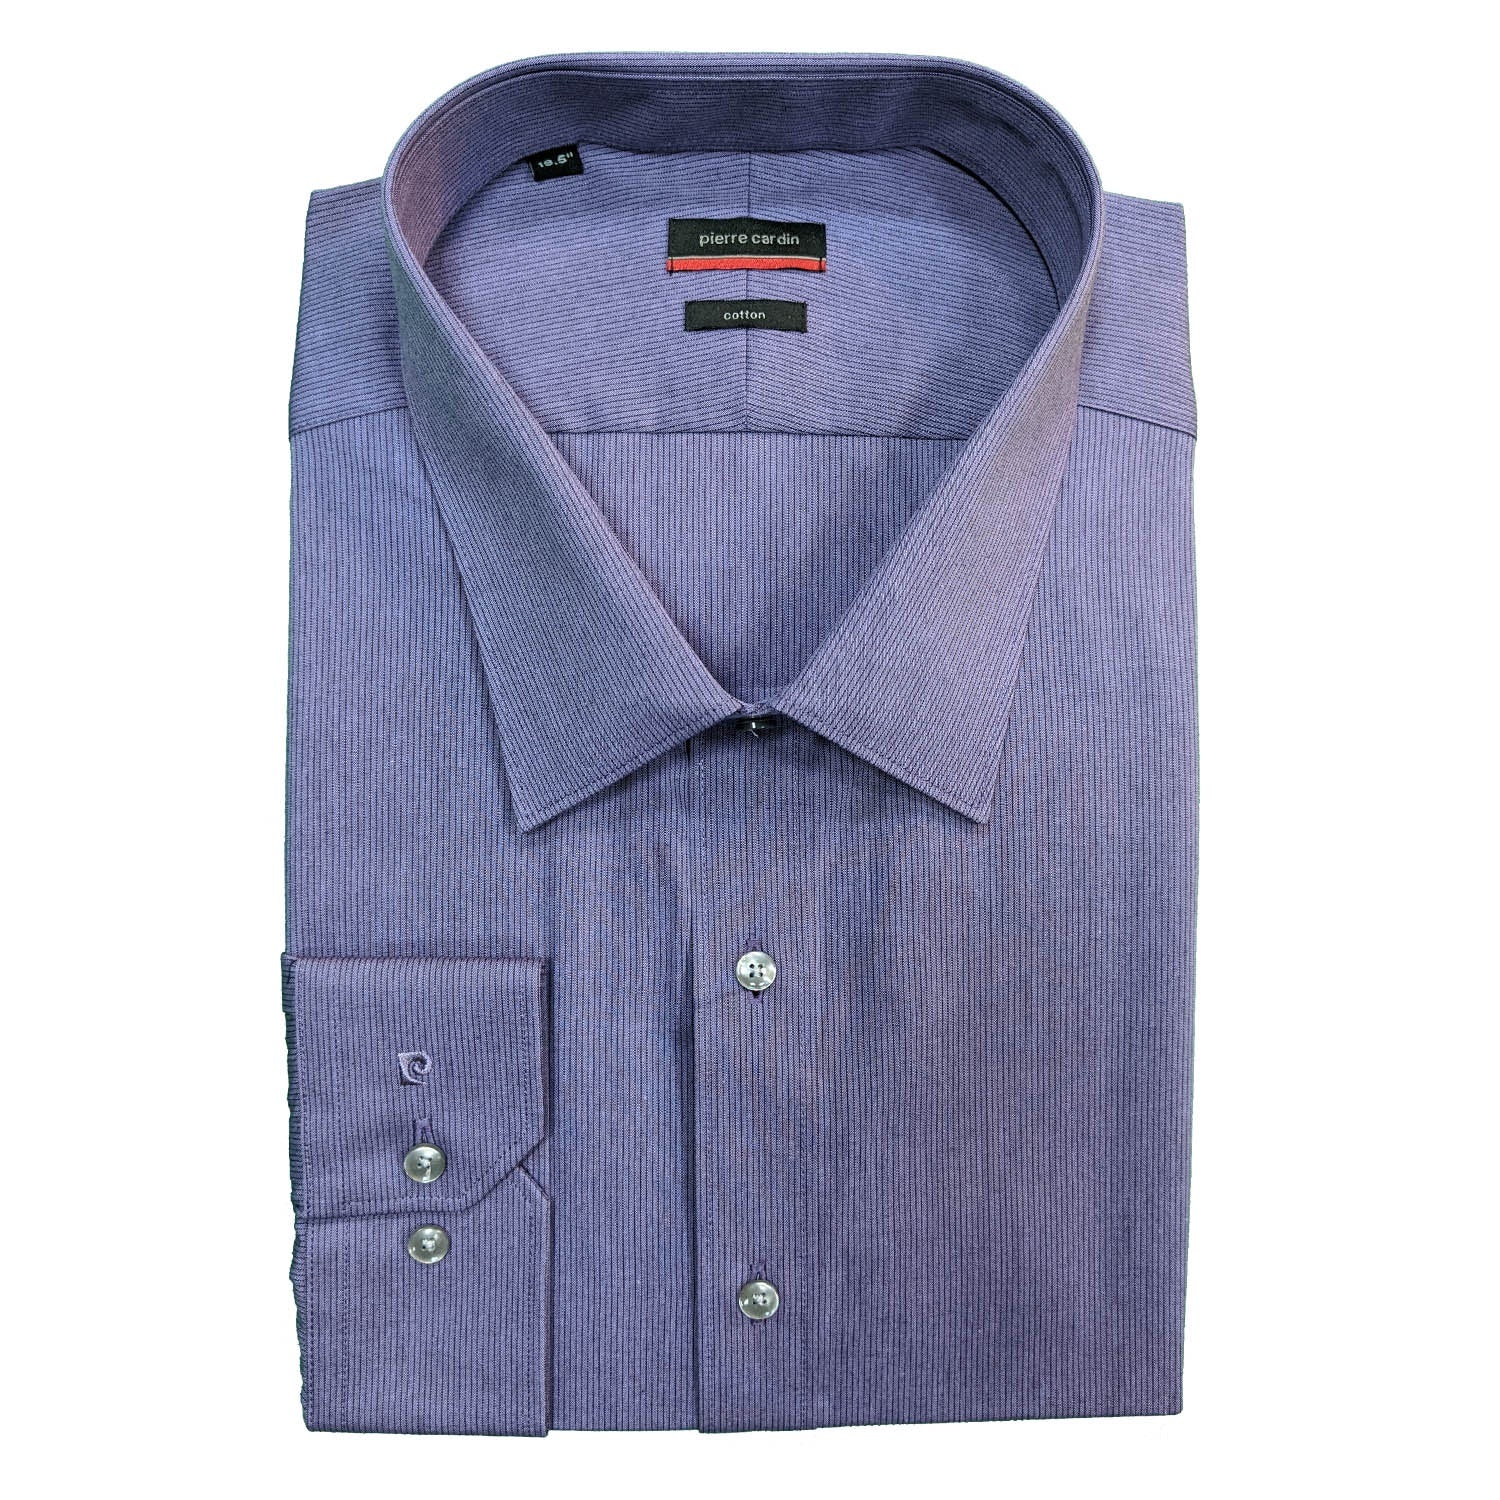 Pierre Cardin L/S Stripe Shirt - 45208500 - Purple 1